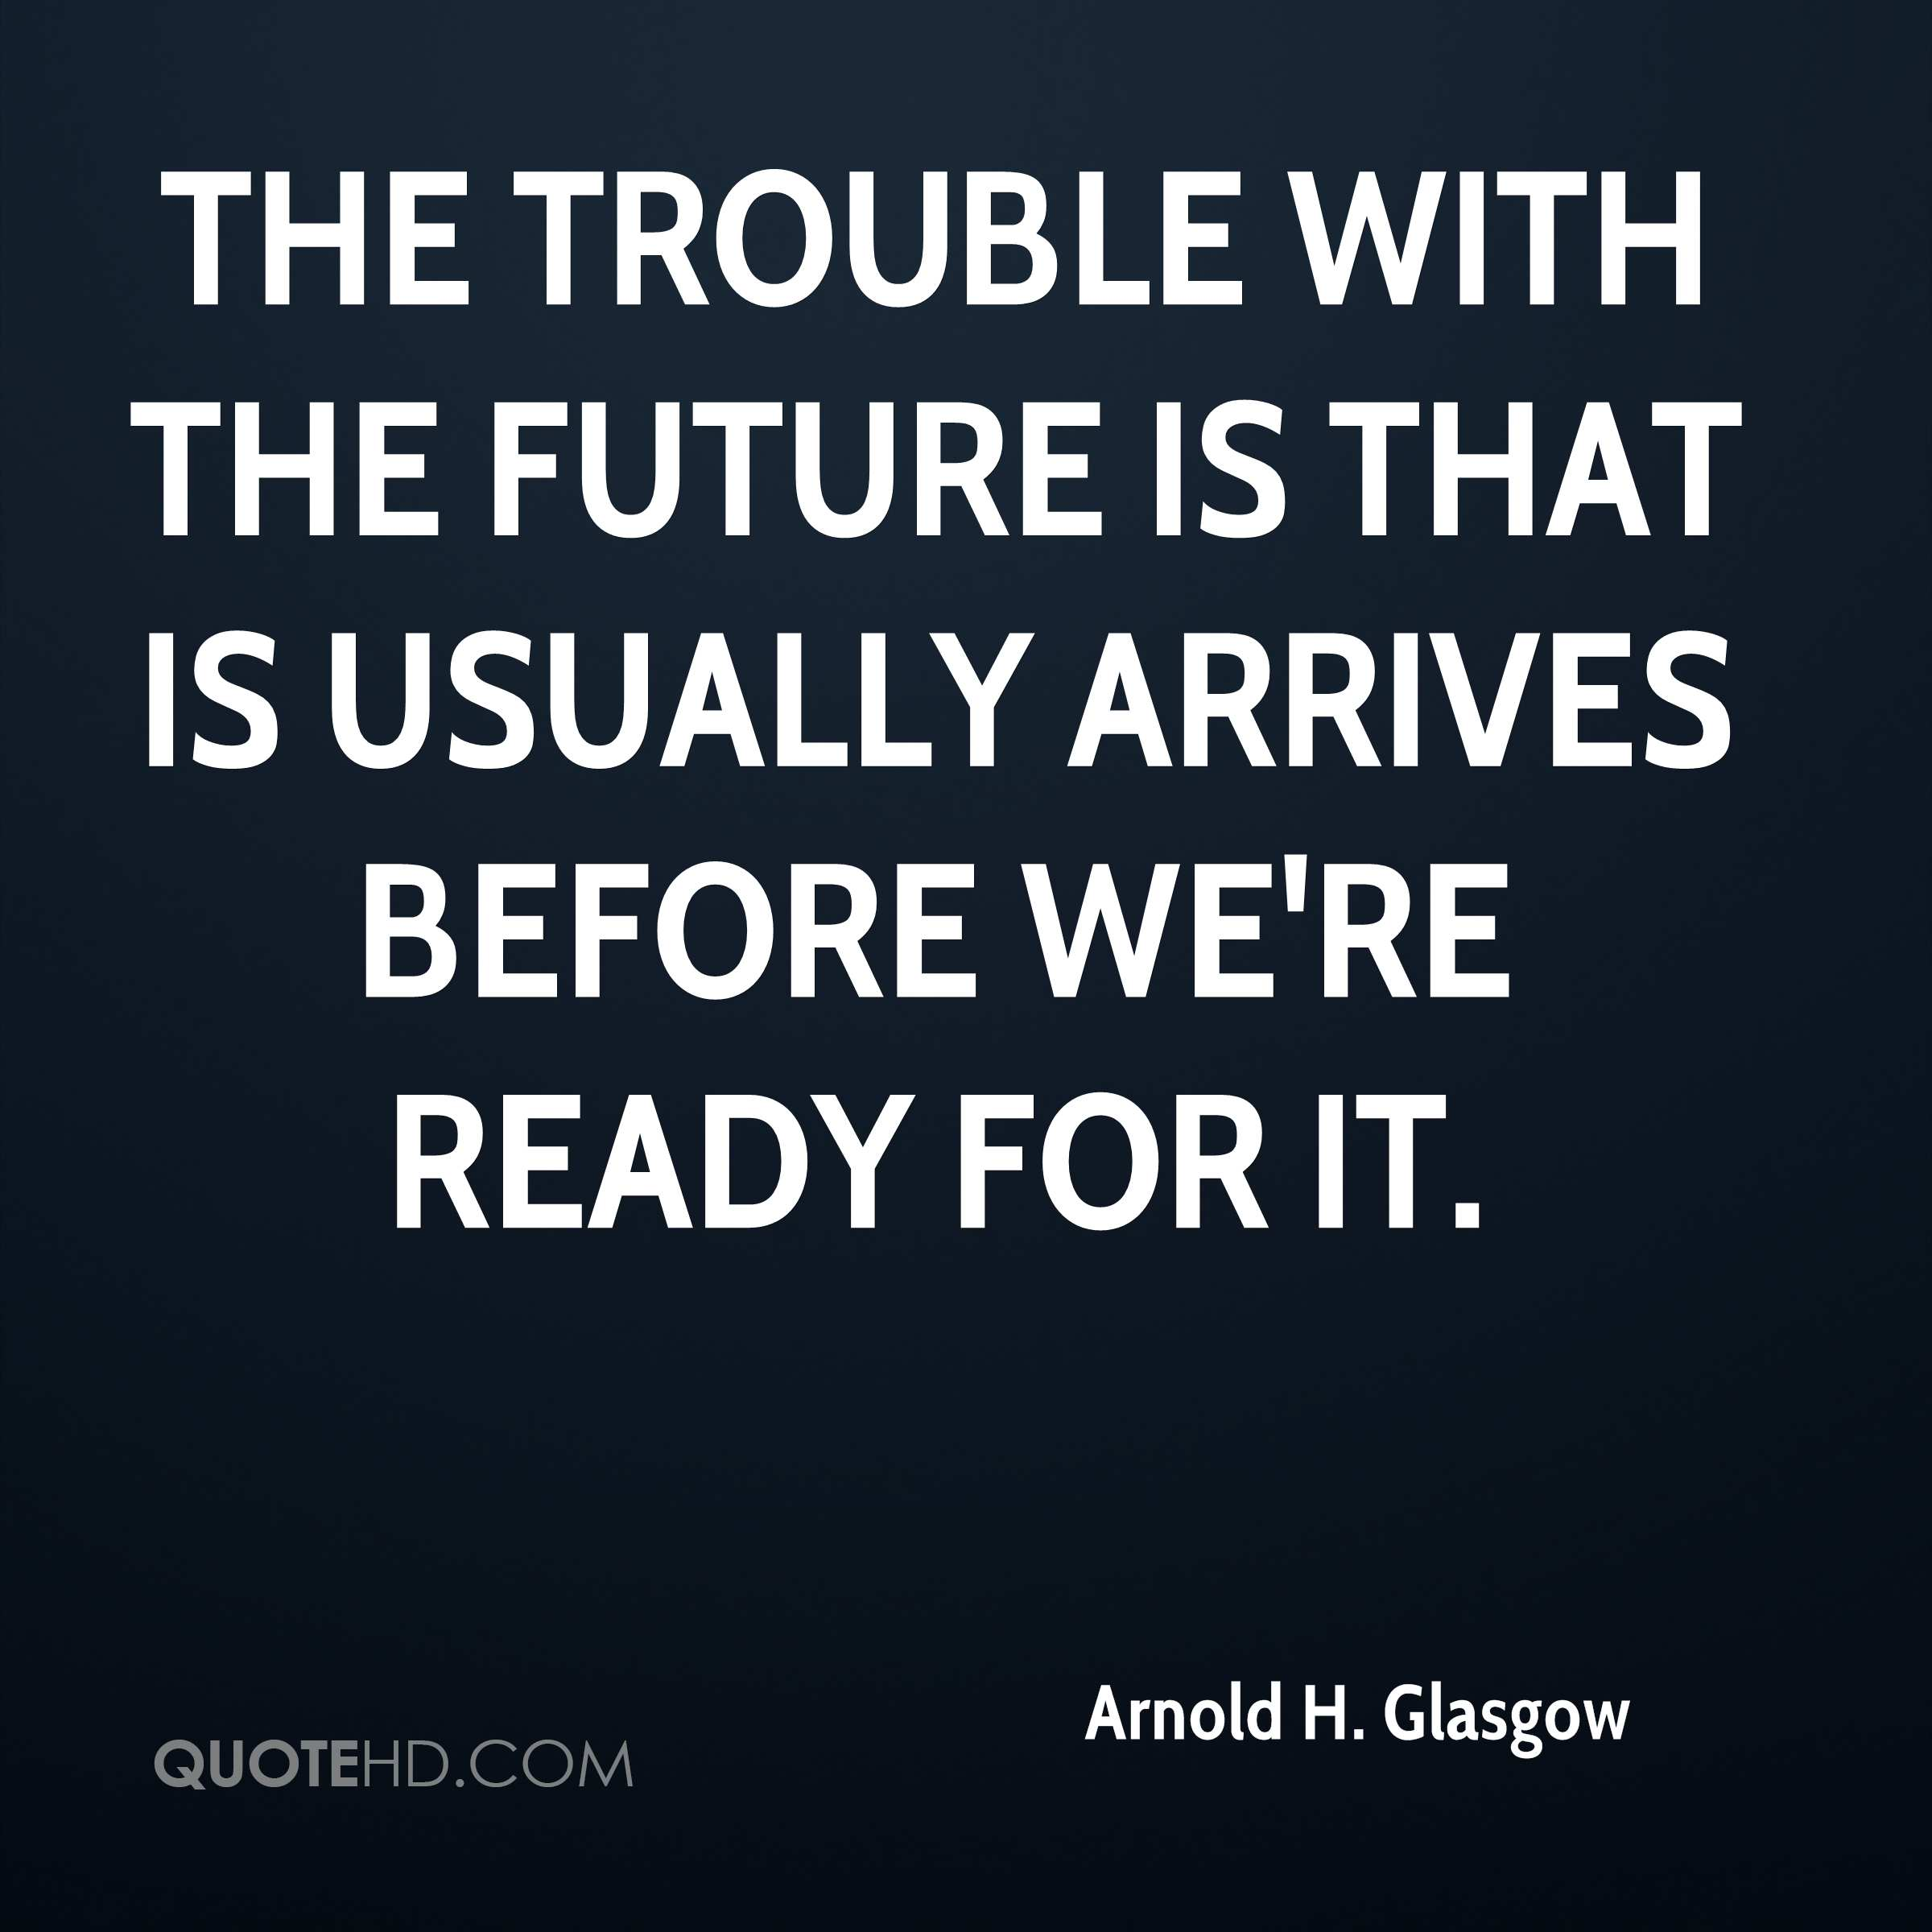 The trouble with the future is that is usually arrives before we're ready for it.